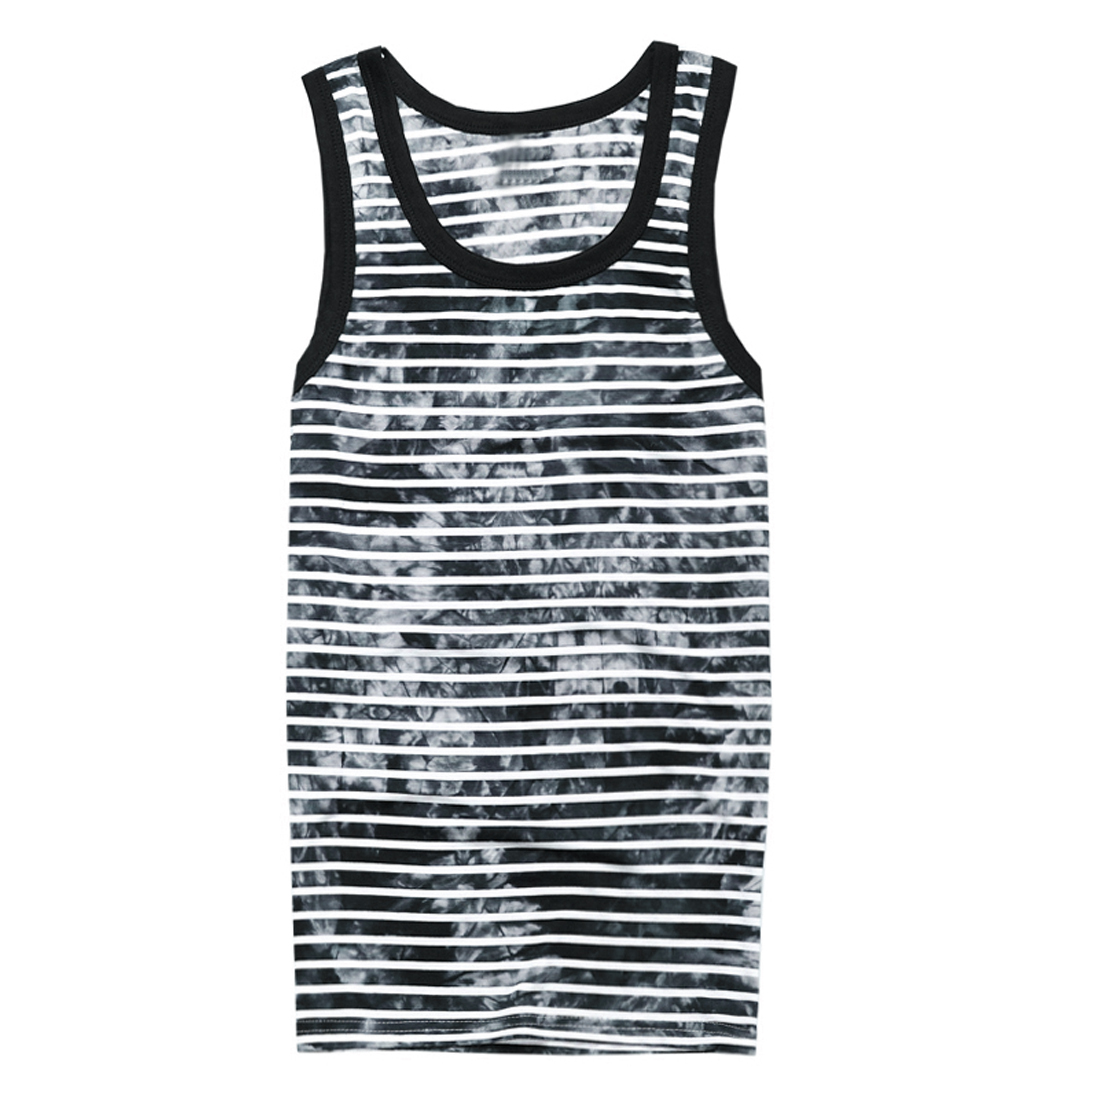 Men U Neck Pullover Sleeveless Stripes Floral Prints Summer Wearing Casual Tank Top Black White S